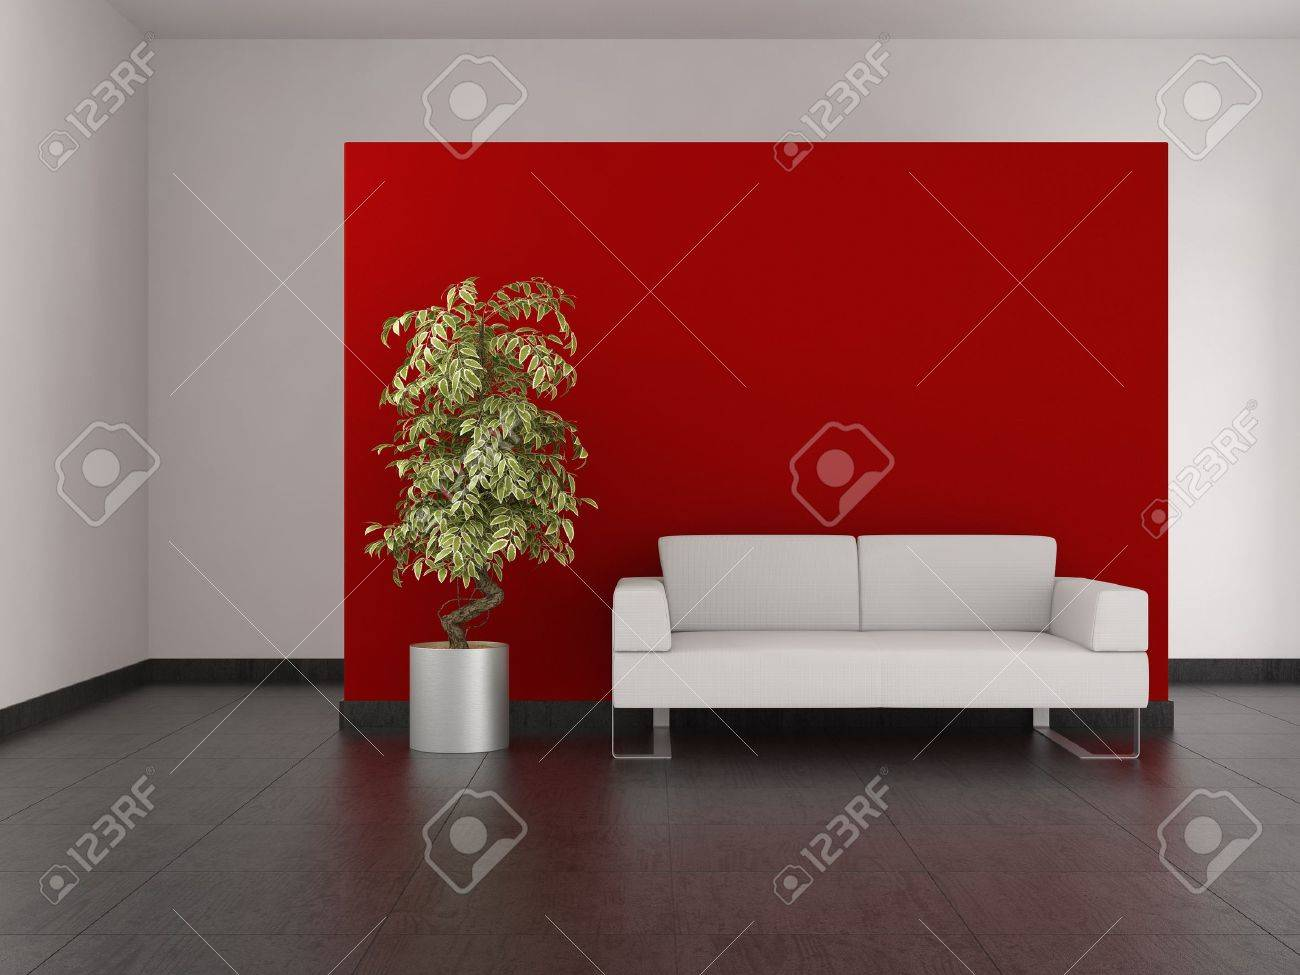 Living Room With Red Modern Living Room With Red Wall And Tiled Floor Stock Photo